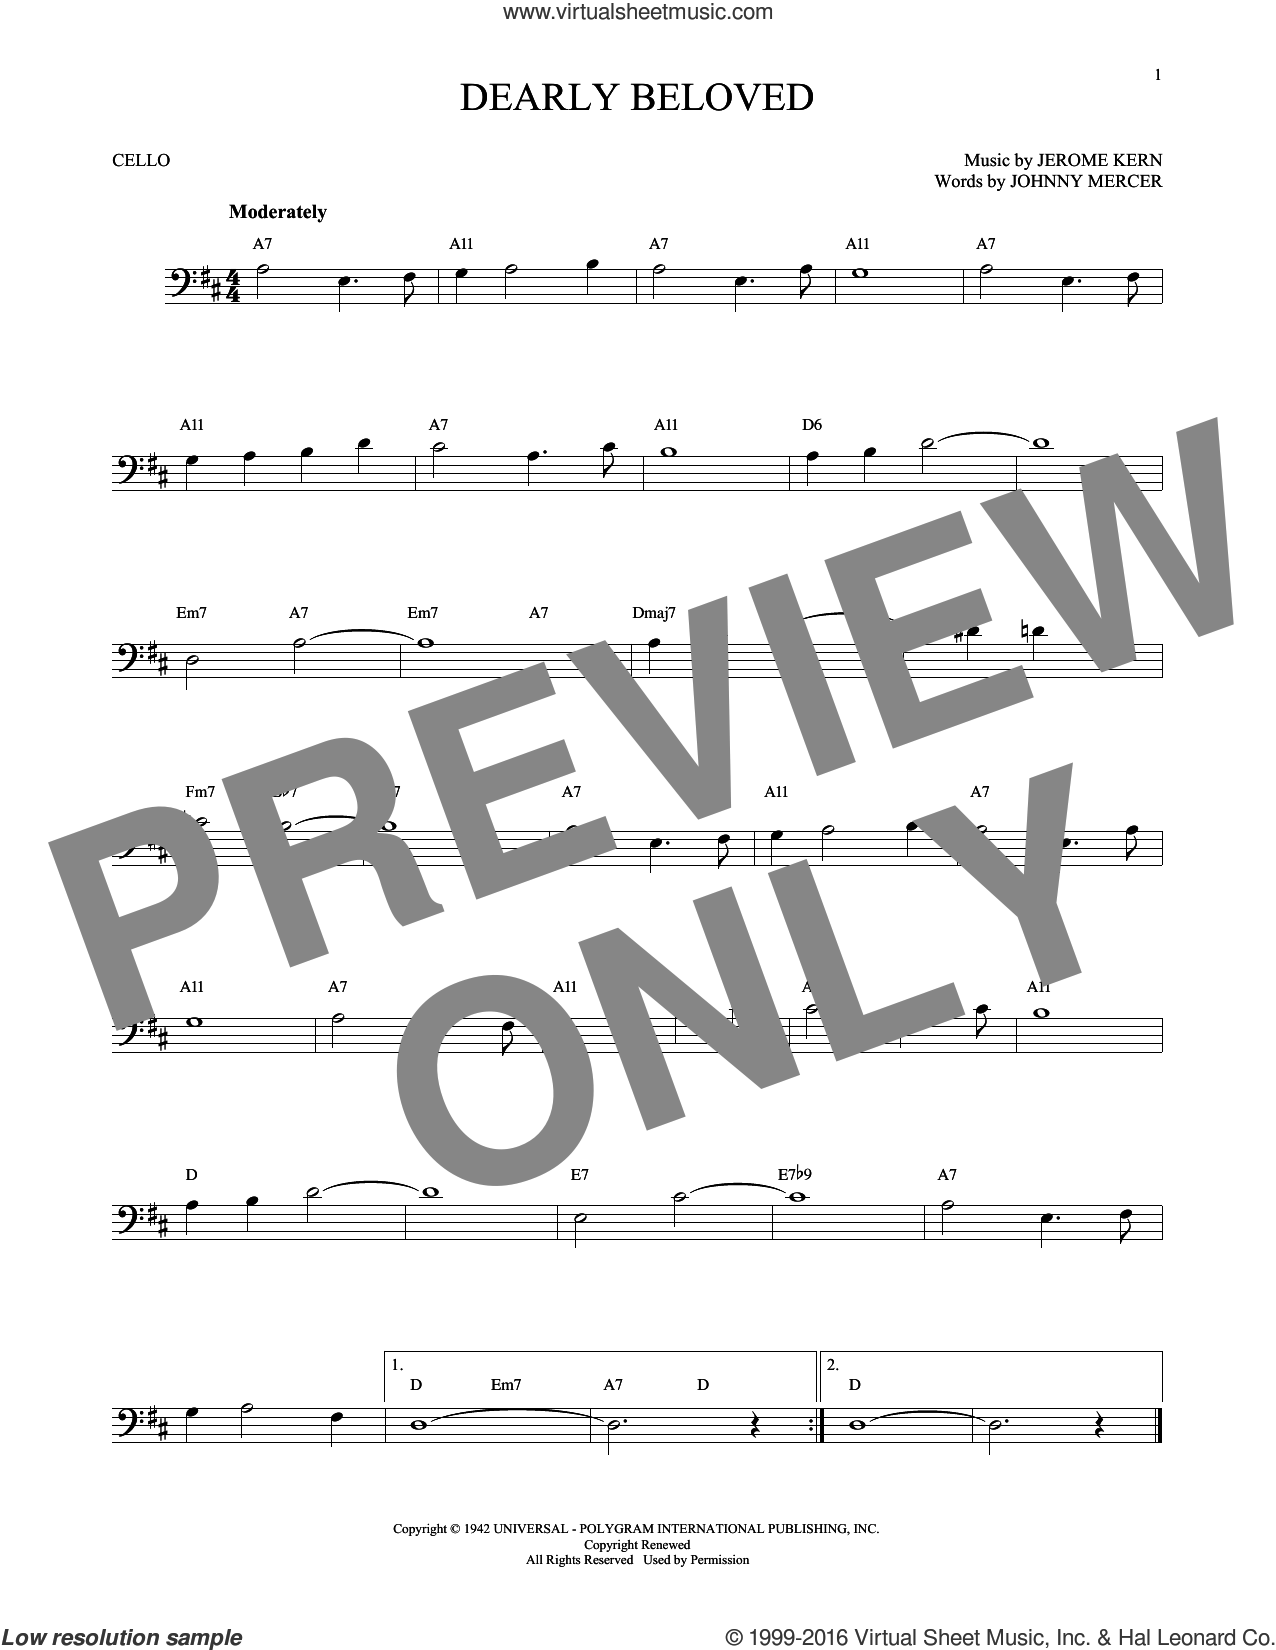 Dearly Beloved sheet music for cello solo by Jerome Kern and Johnny Mercer, intermediate skill level